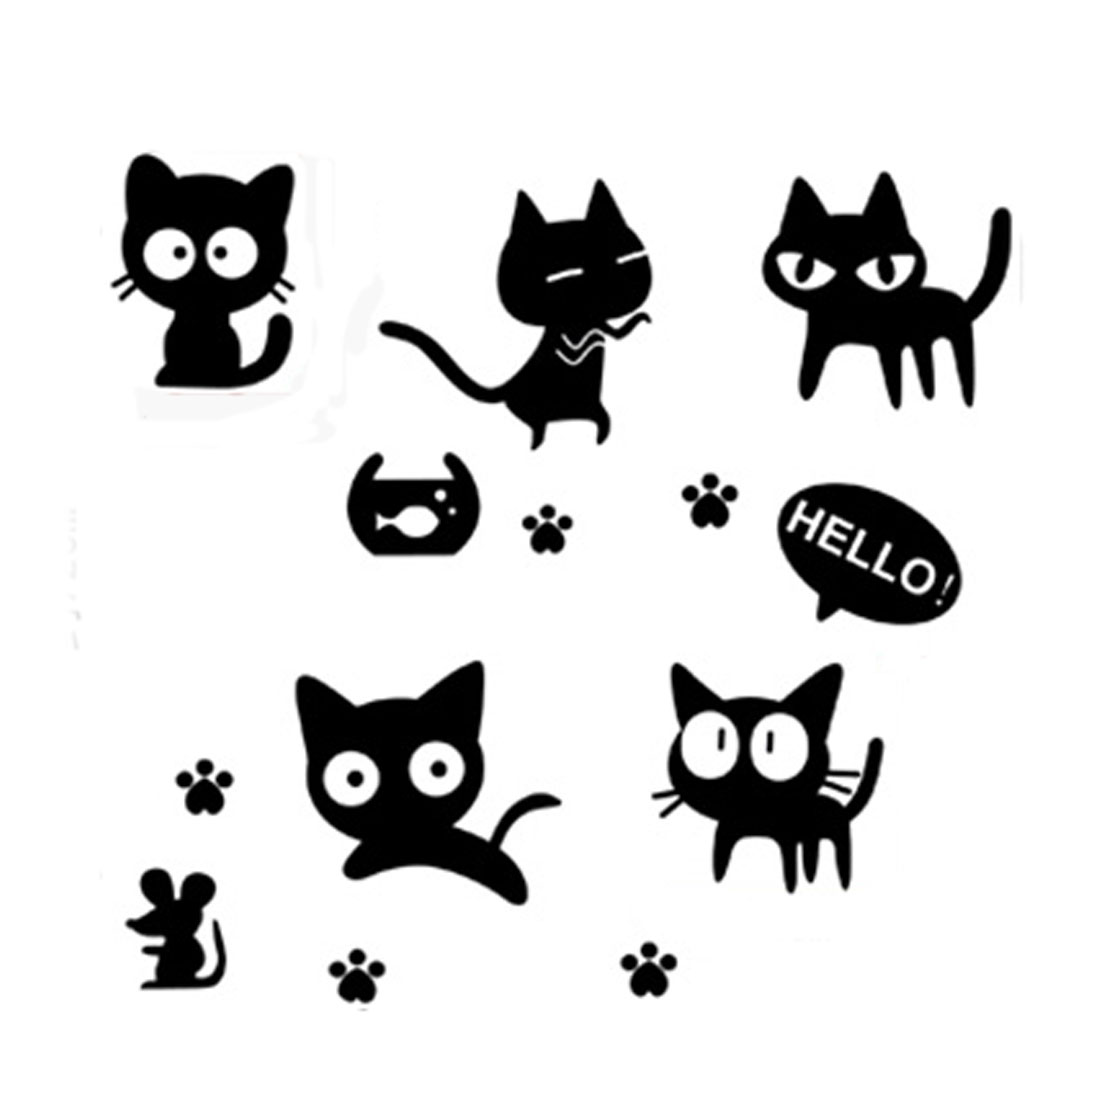 Unique Bargains Black Cats Pattern Removable Wall Sticker Decal Wallpaper Room Decor